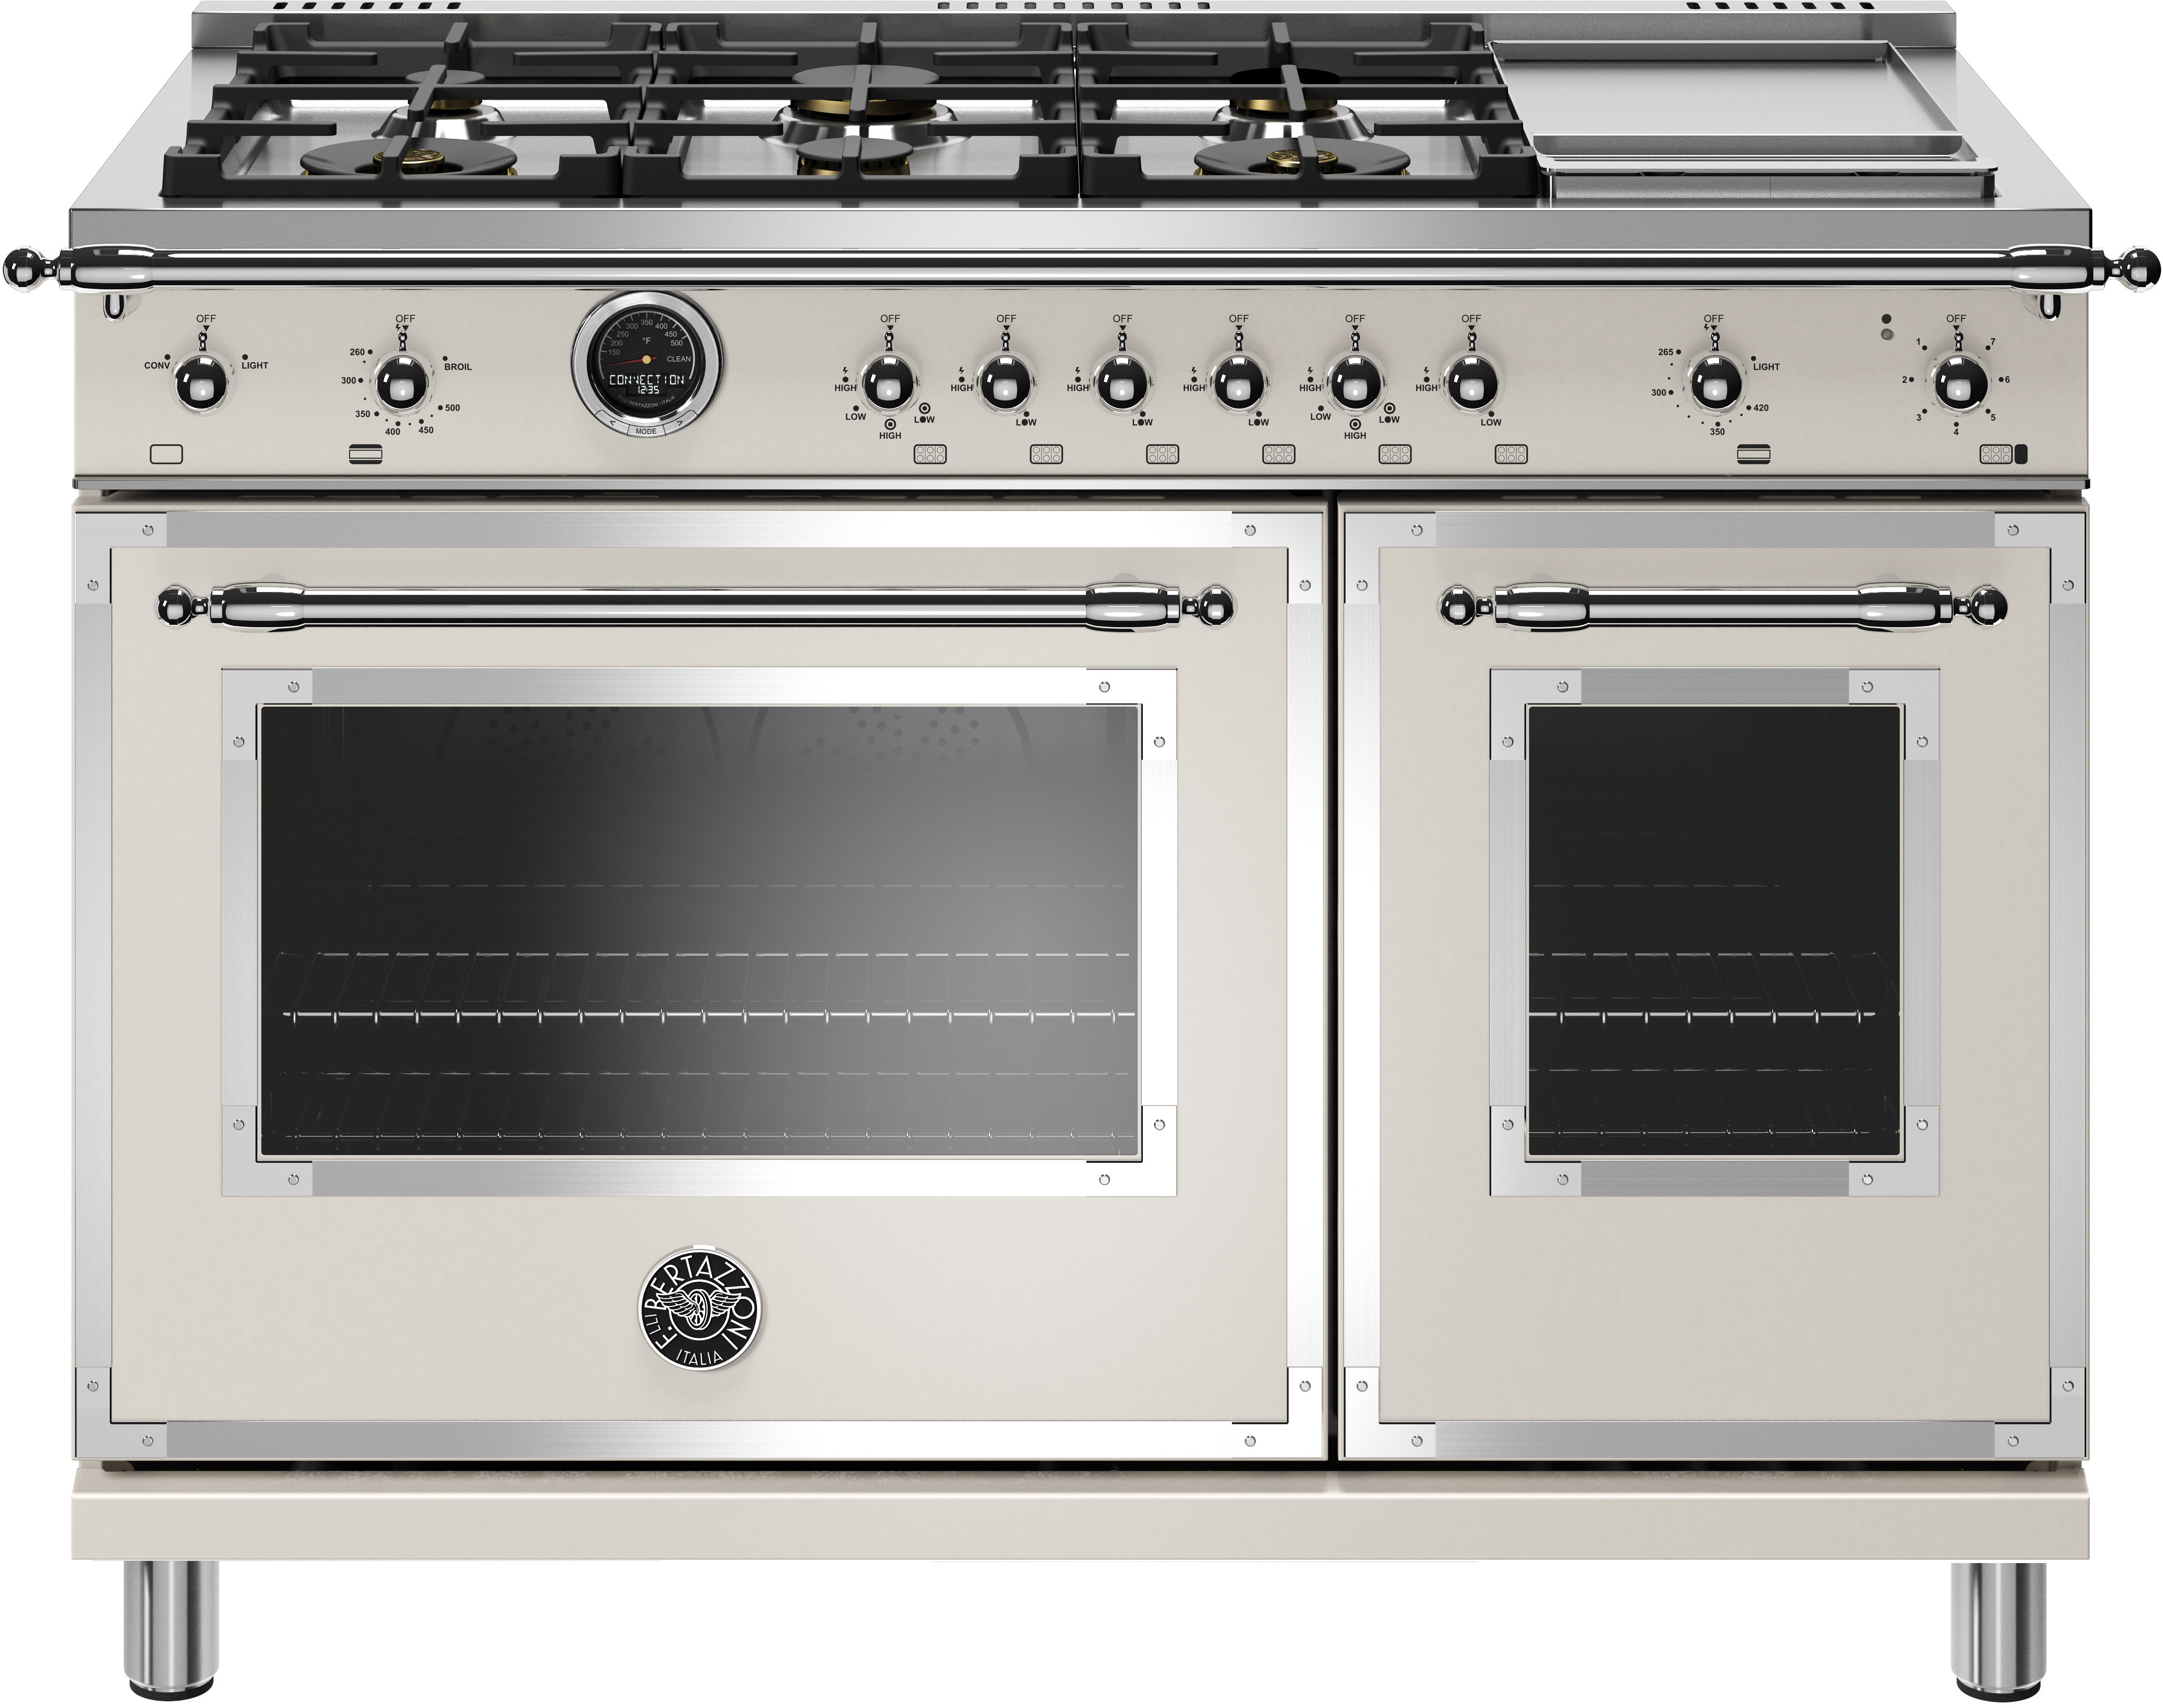 Bertazzoni Range 48inch in Ivory color showcased by Corbeil Electro Store